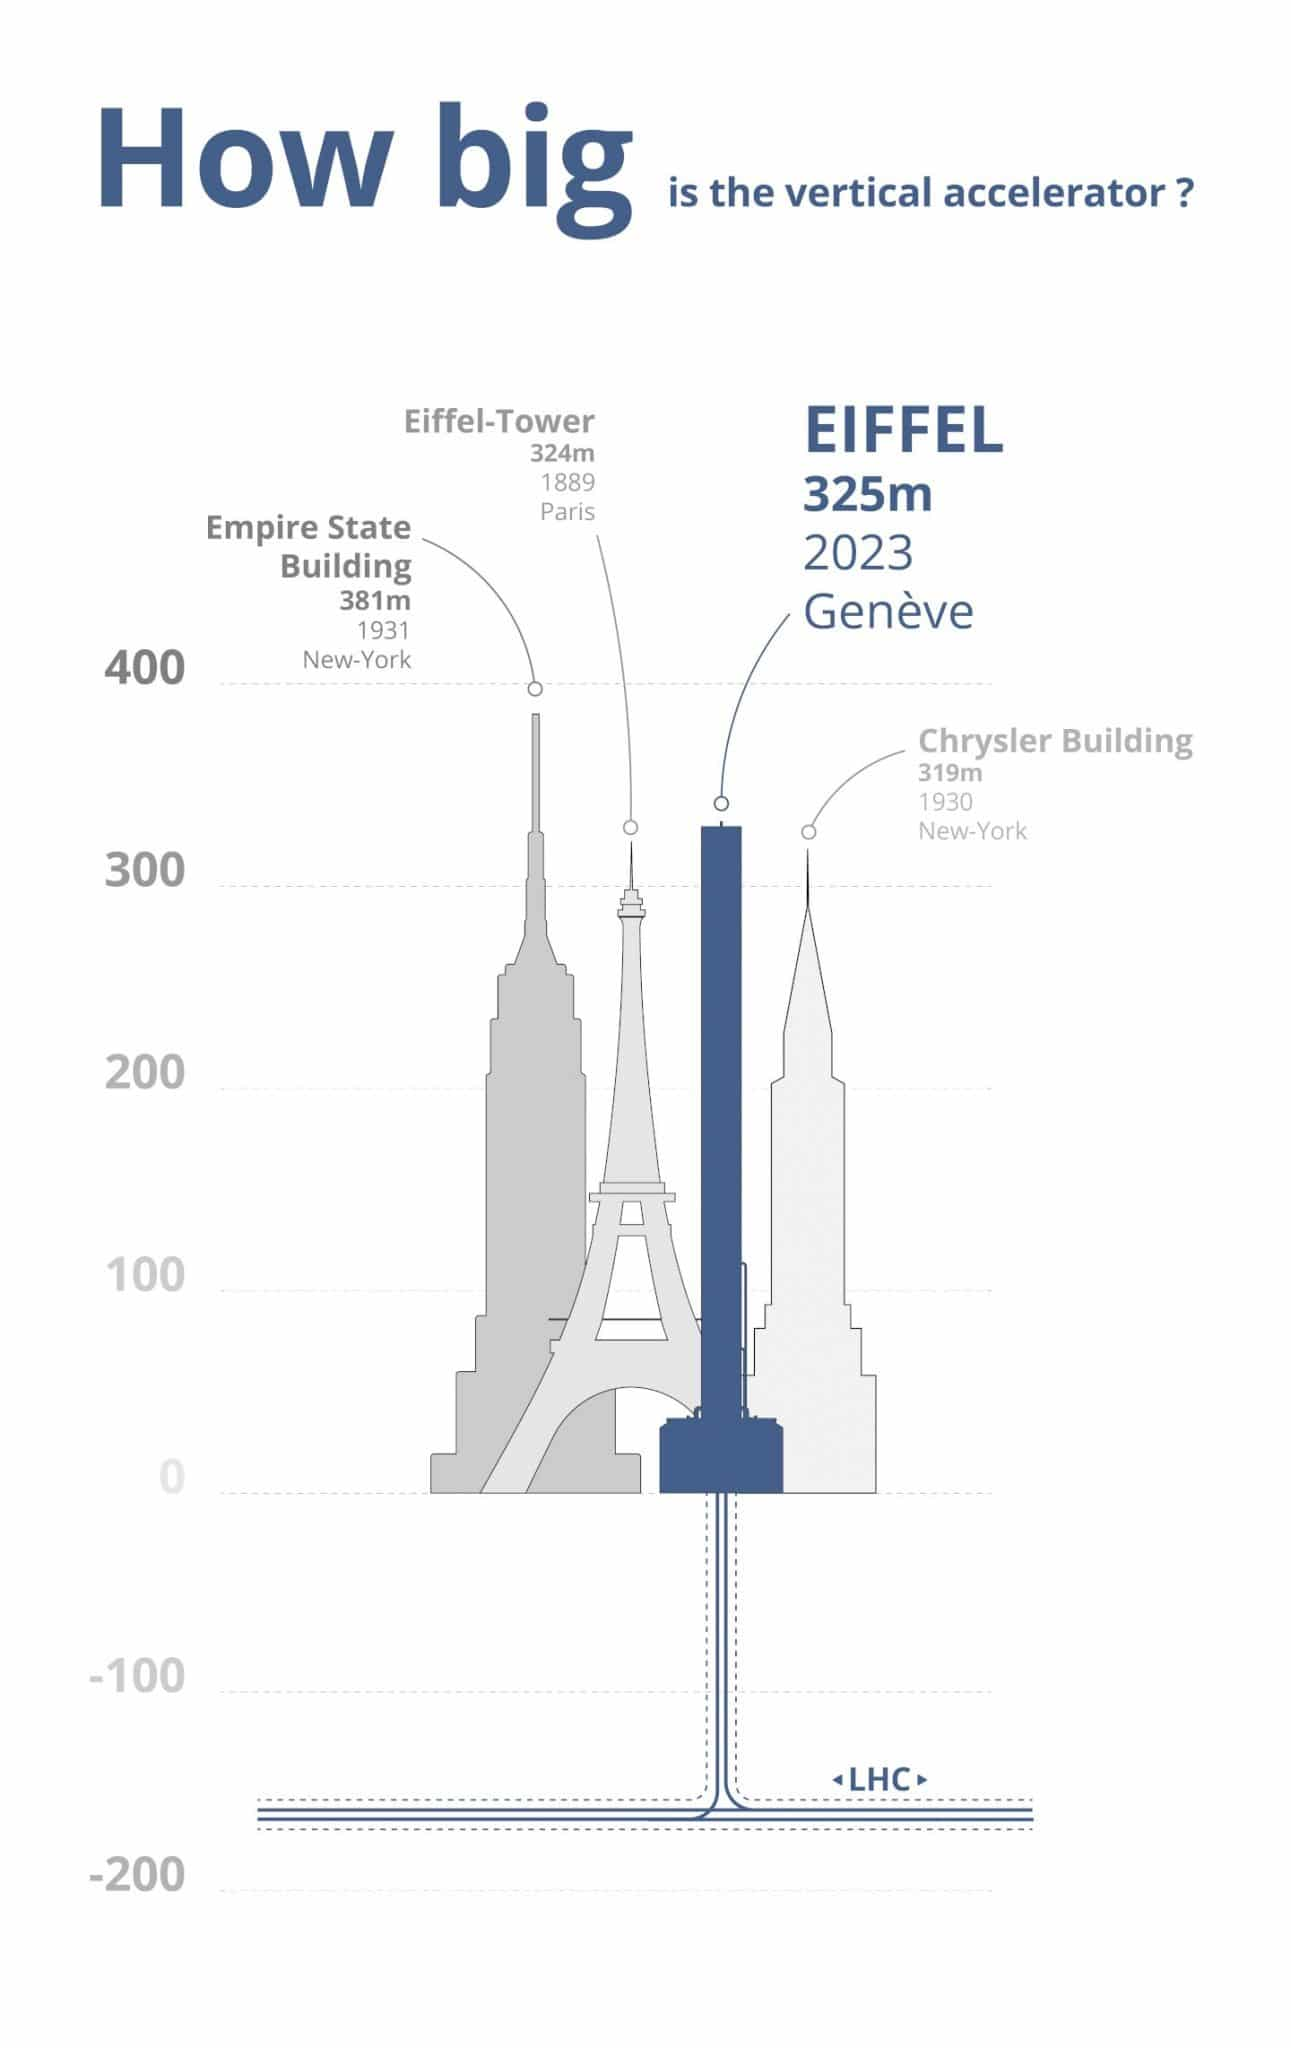 CERN's proposed EIFFEL space elevator accelerator will be entirely 3D printed